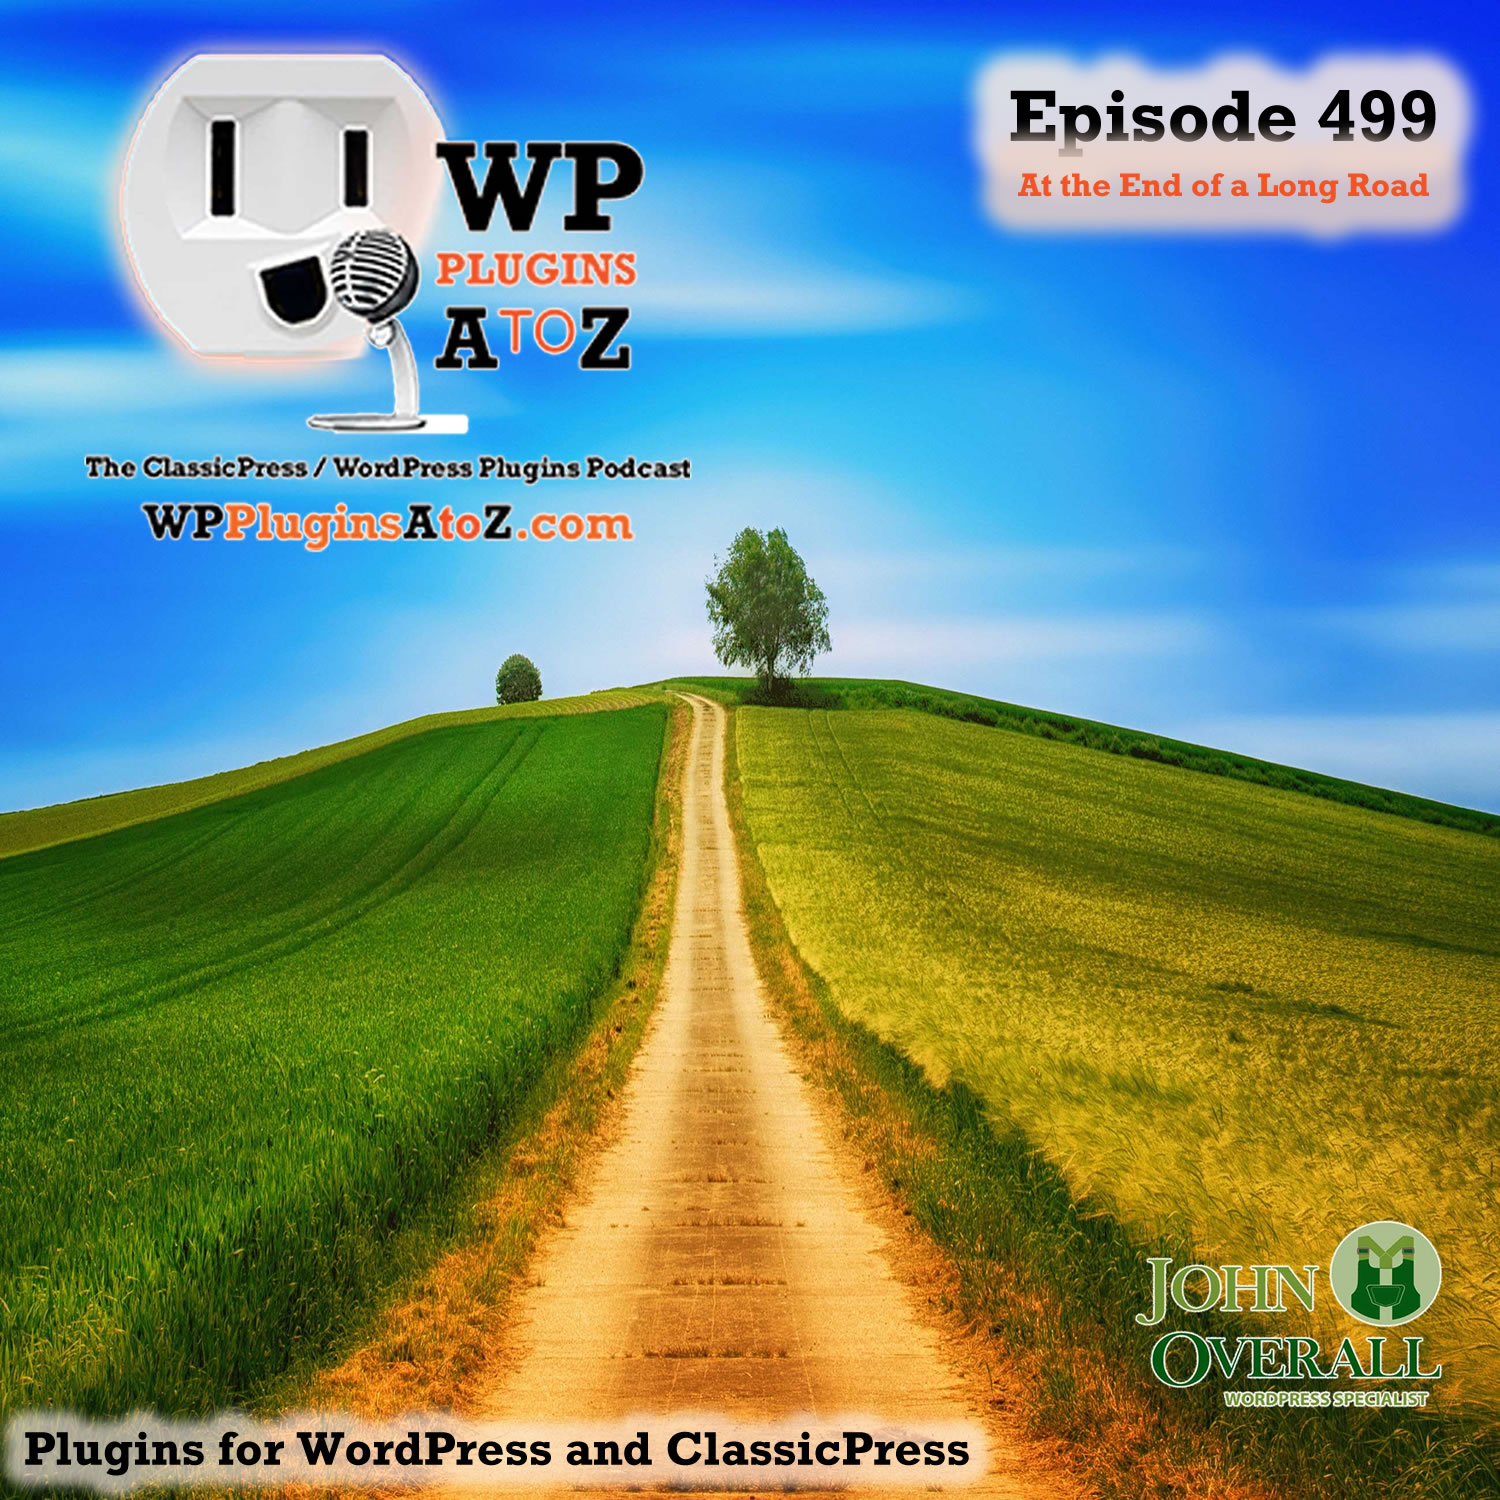 At the End of a Long Road It's Episode 499 - We have plugins for Showcasing Art, Stopping the Updates, New Thumbnails, Acting Like a User, Cooking with Gas, Saving Money ....., and ClassicPress Options. It's all coming up on WordPress Plugins A-Z! Contest Gallery – Photo Contest Plugin for WordPress, Smart Coupons for WooCommerce, reGenerate Thumbnails Advanced, Login as User, Recipe Key, TLC NO UPDATE and ClassicPress options on Episode 499.